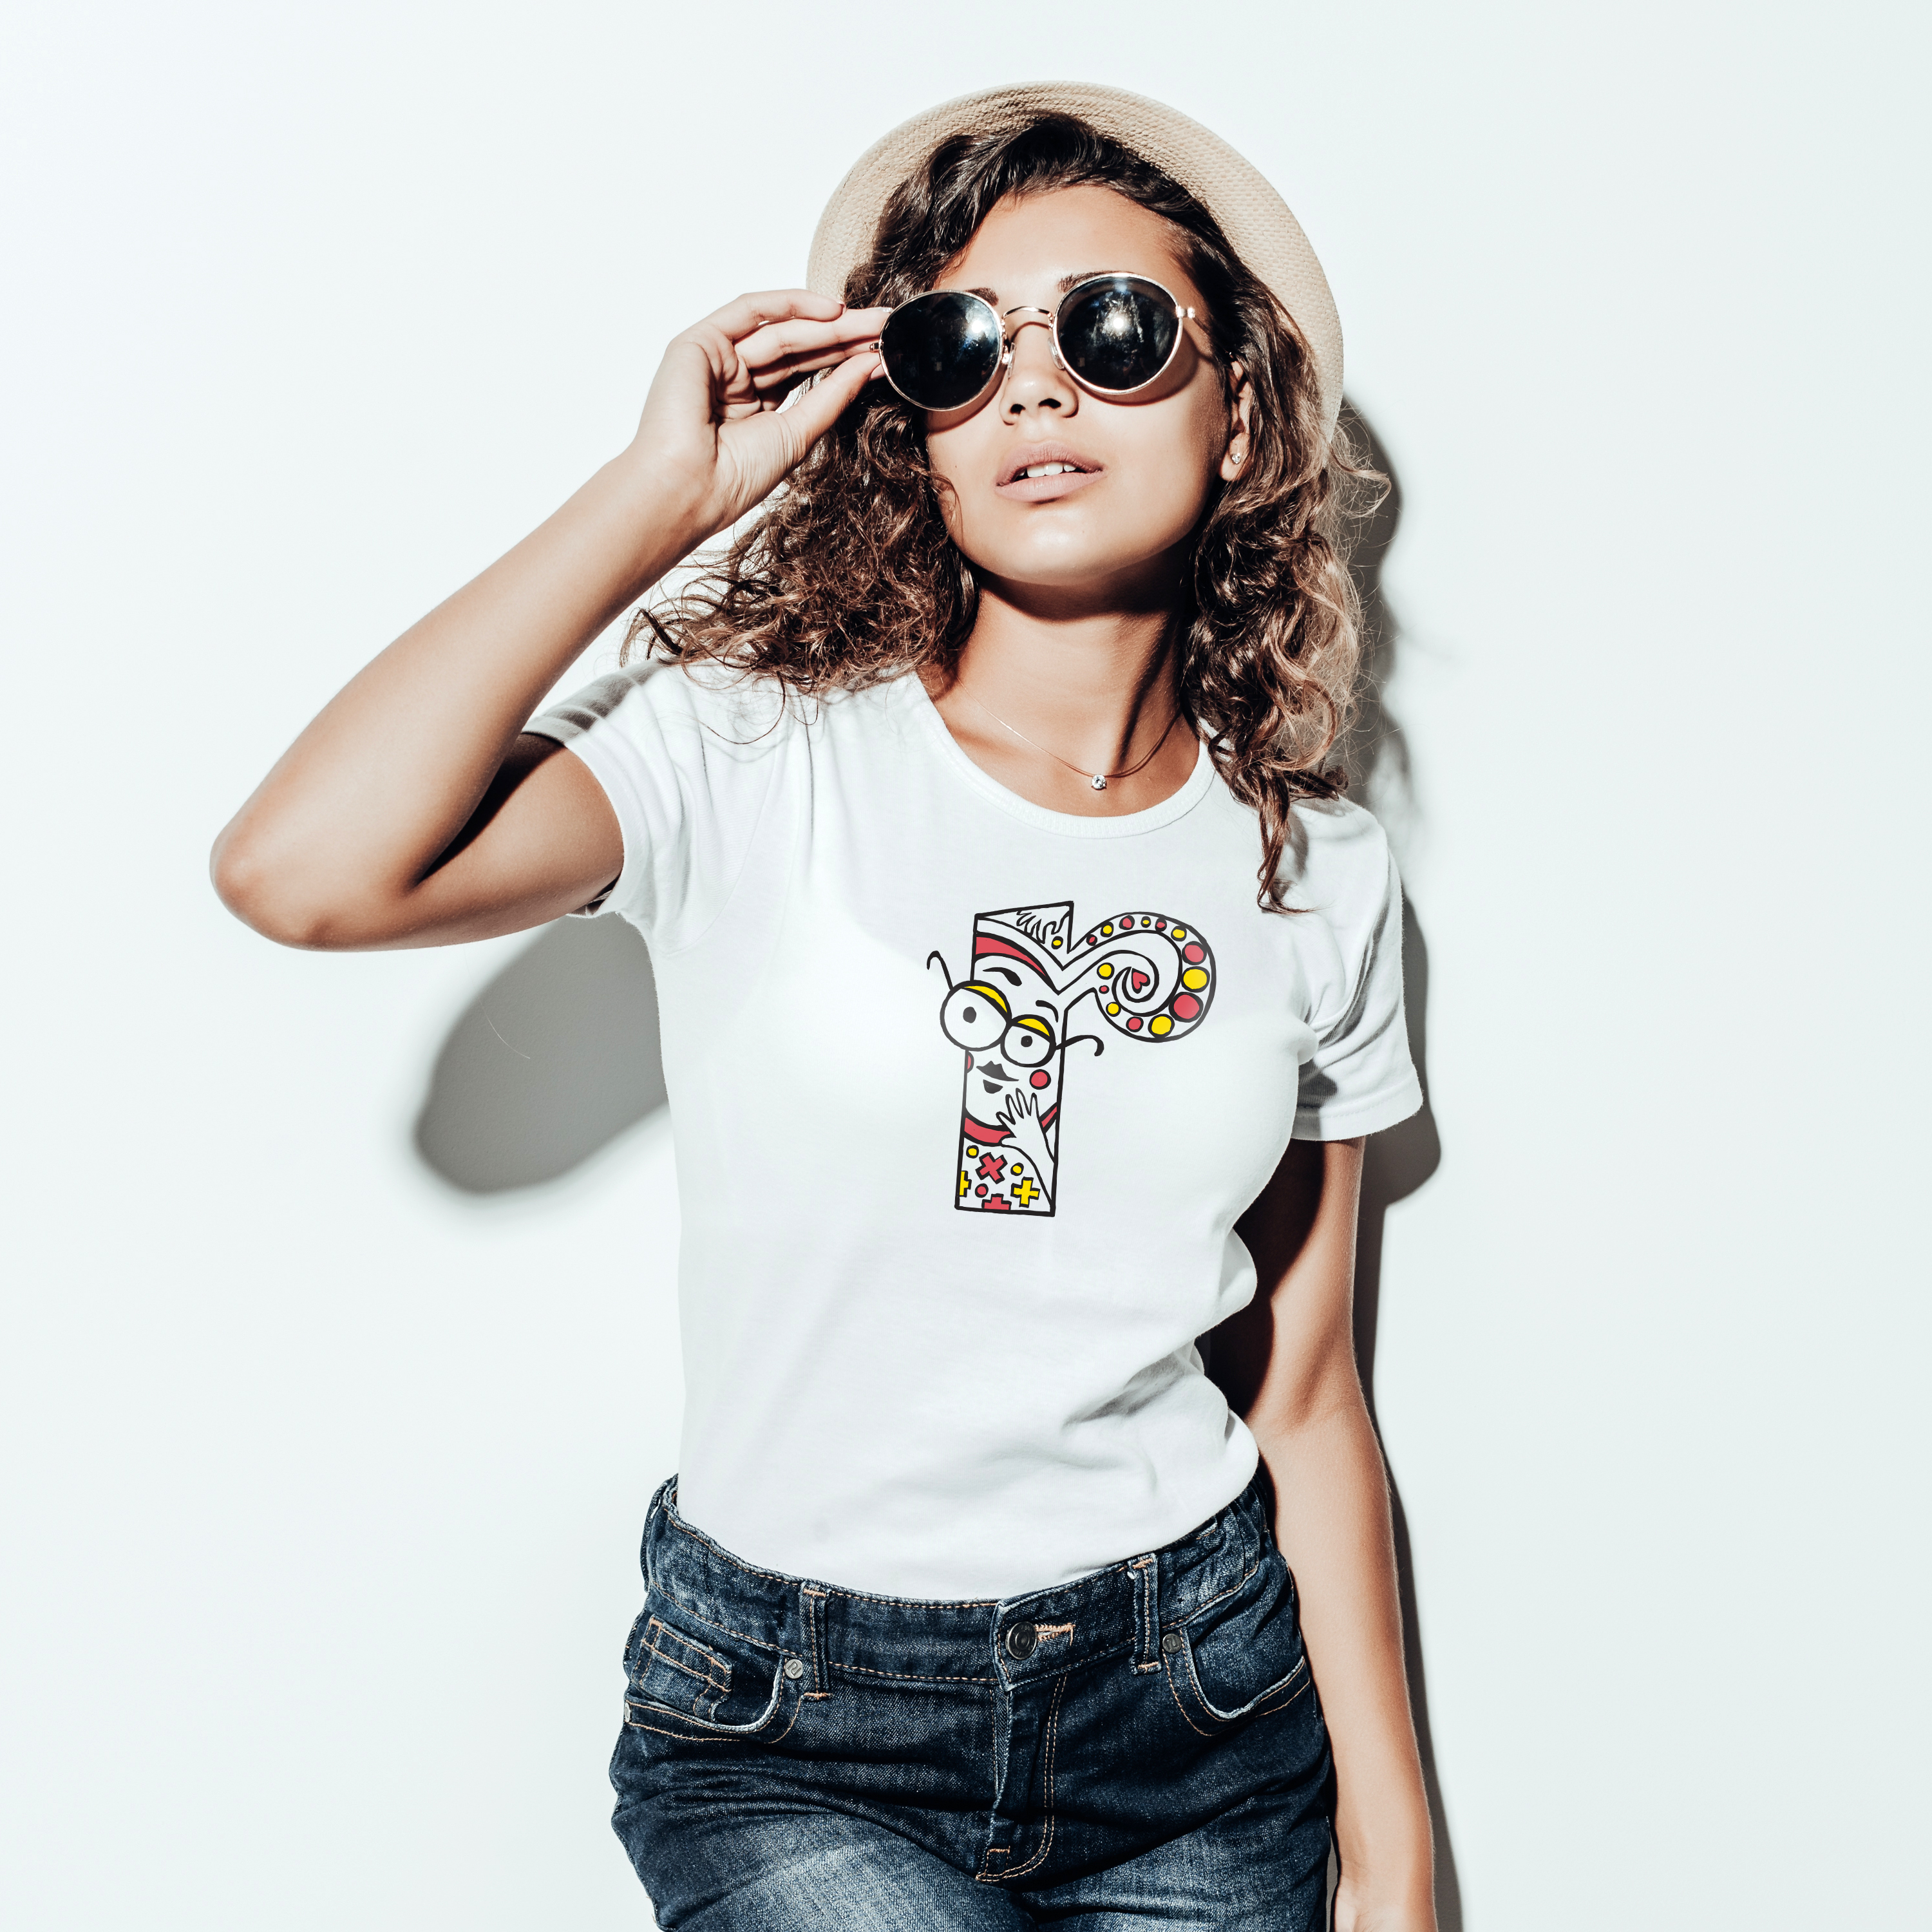 Typo collection - t-shirts & bags 19